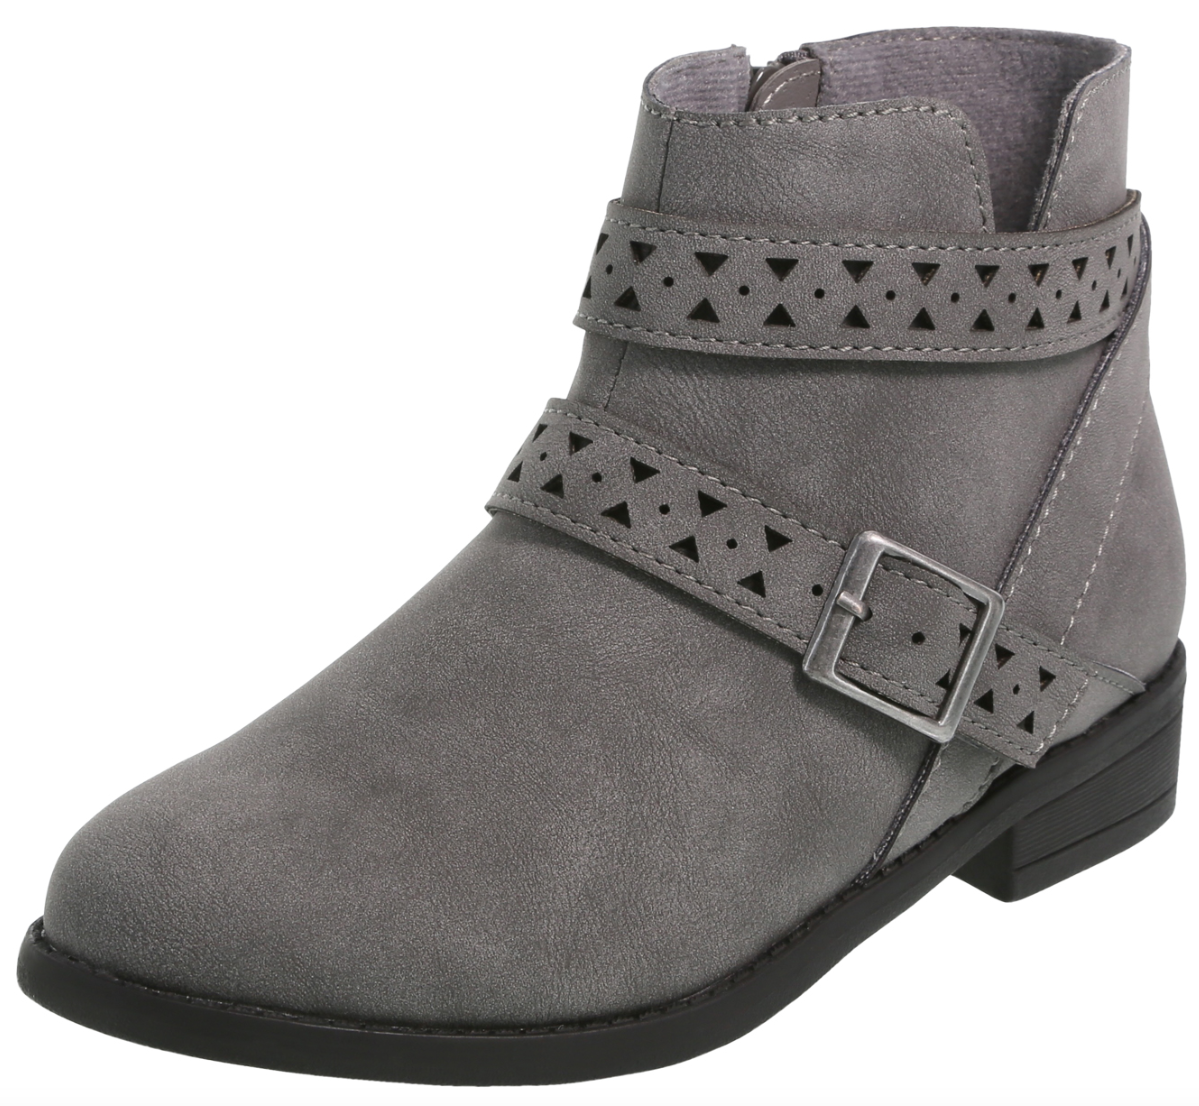 Payless Boot 1 AB 10.26